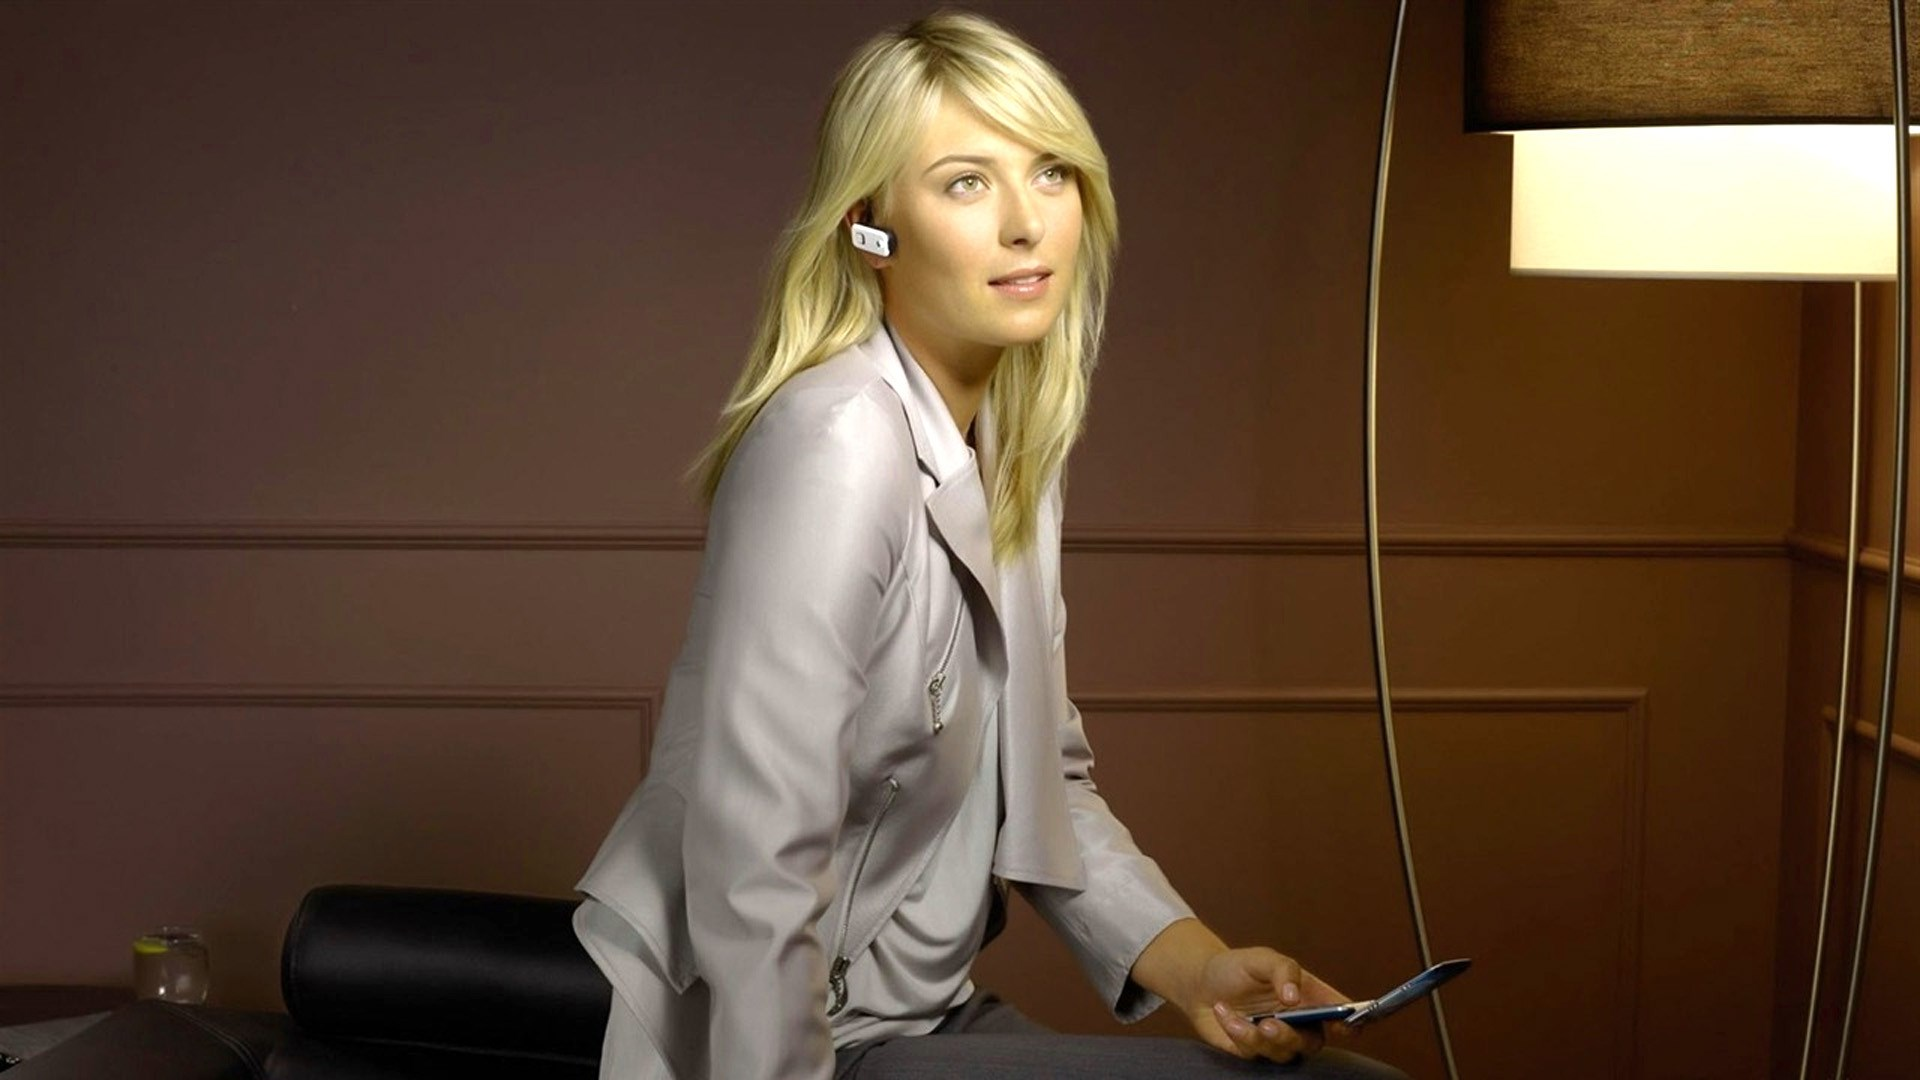 1920-x-1080-px-Awesome-maria-sharapova-by-Colvin-Nash-Williams-for-TWD-wallpaper-wp360724-1